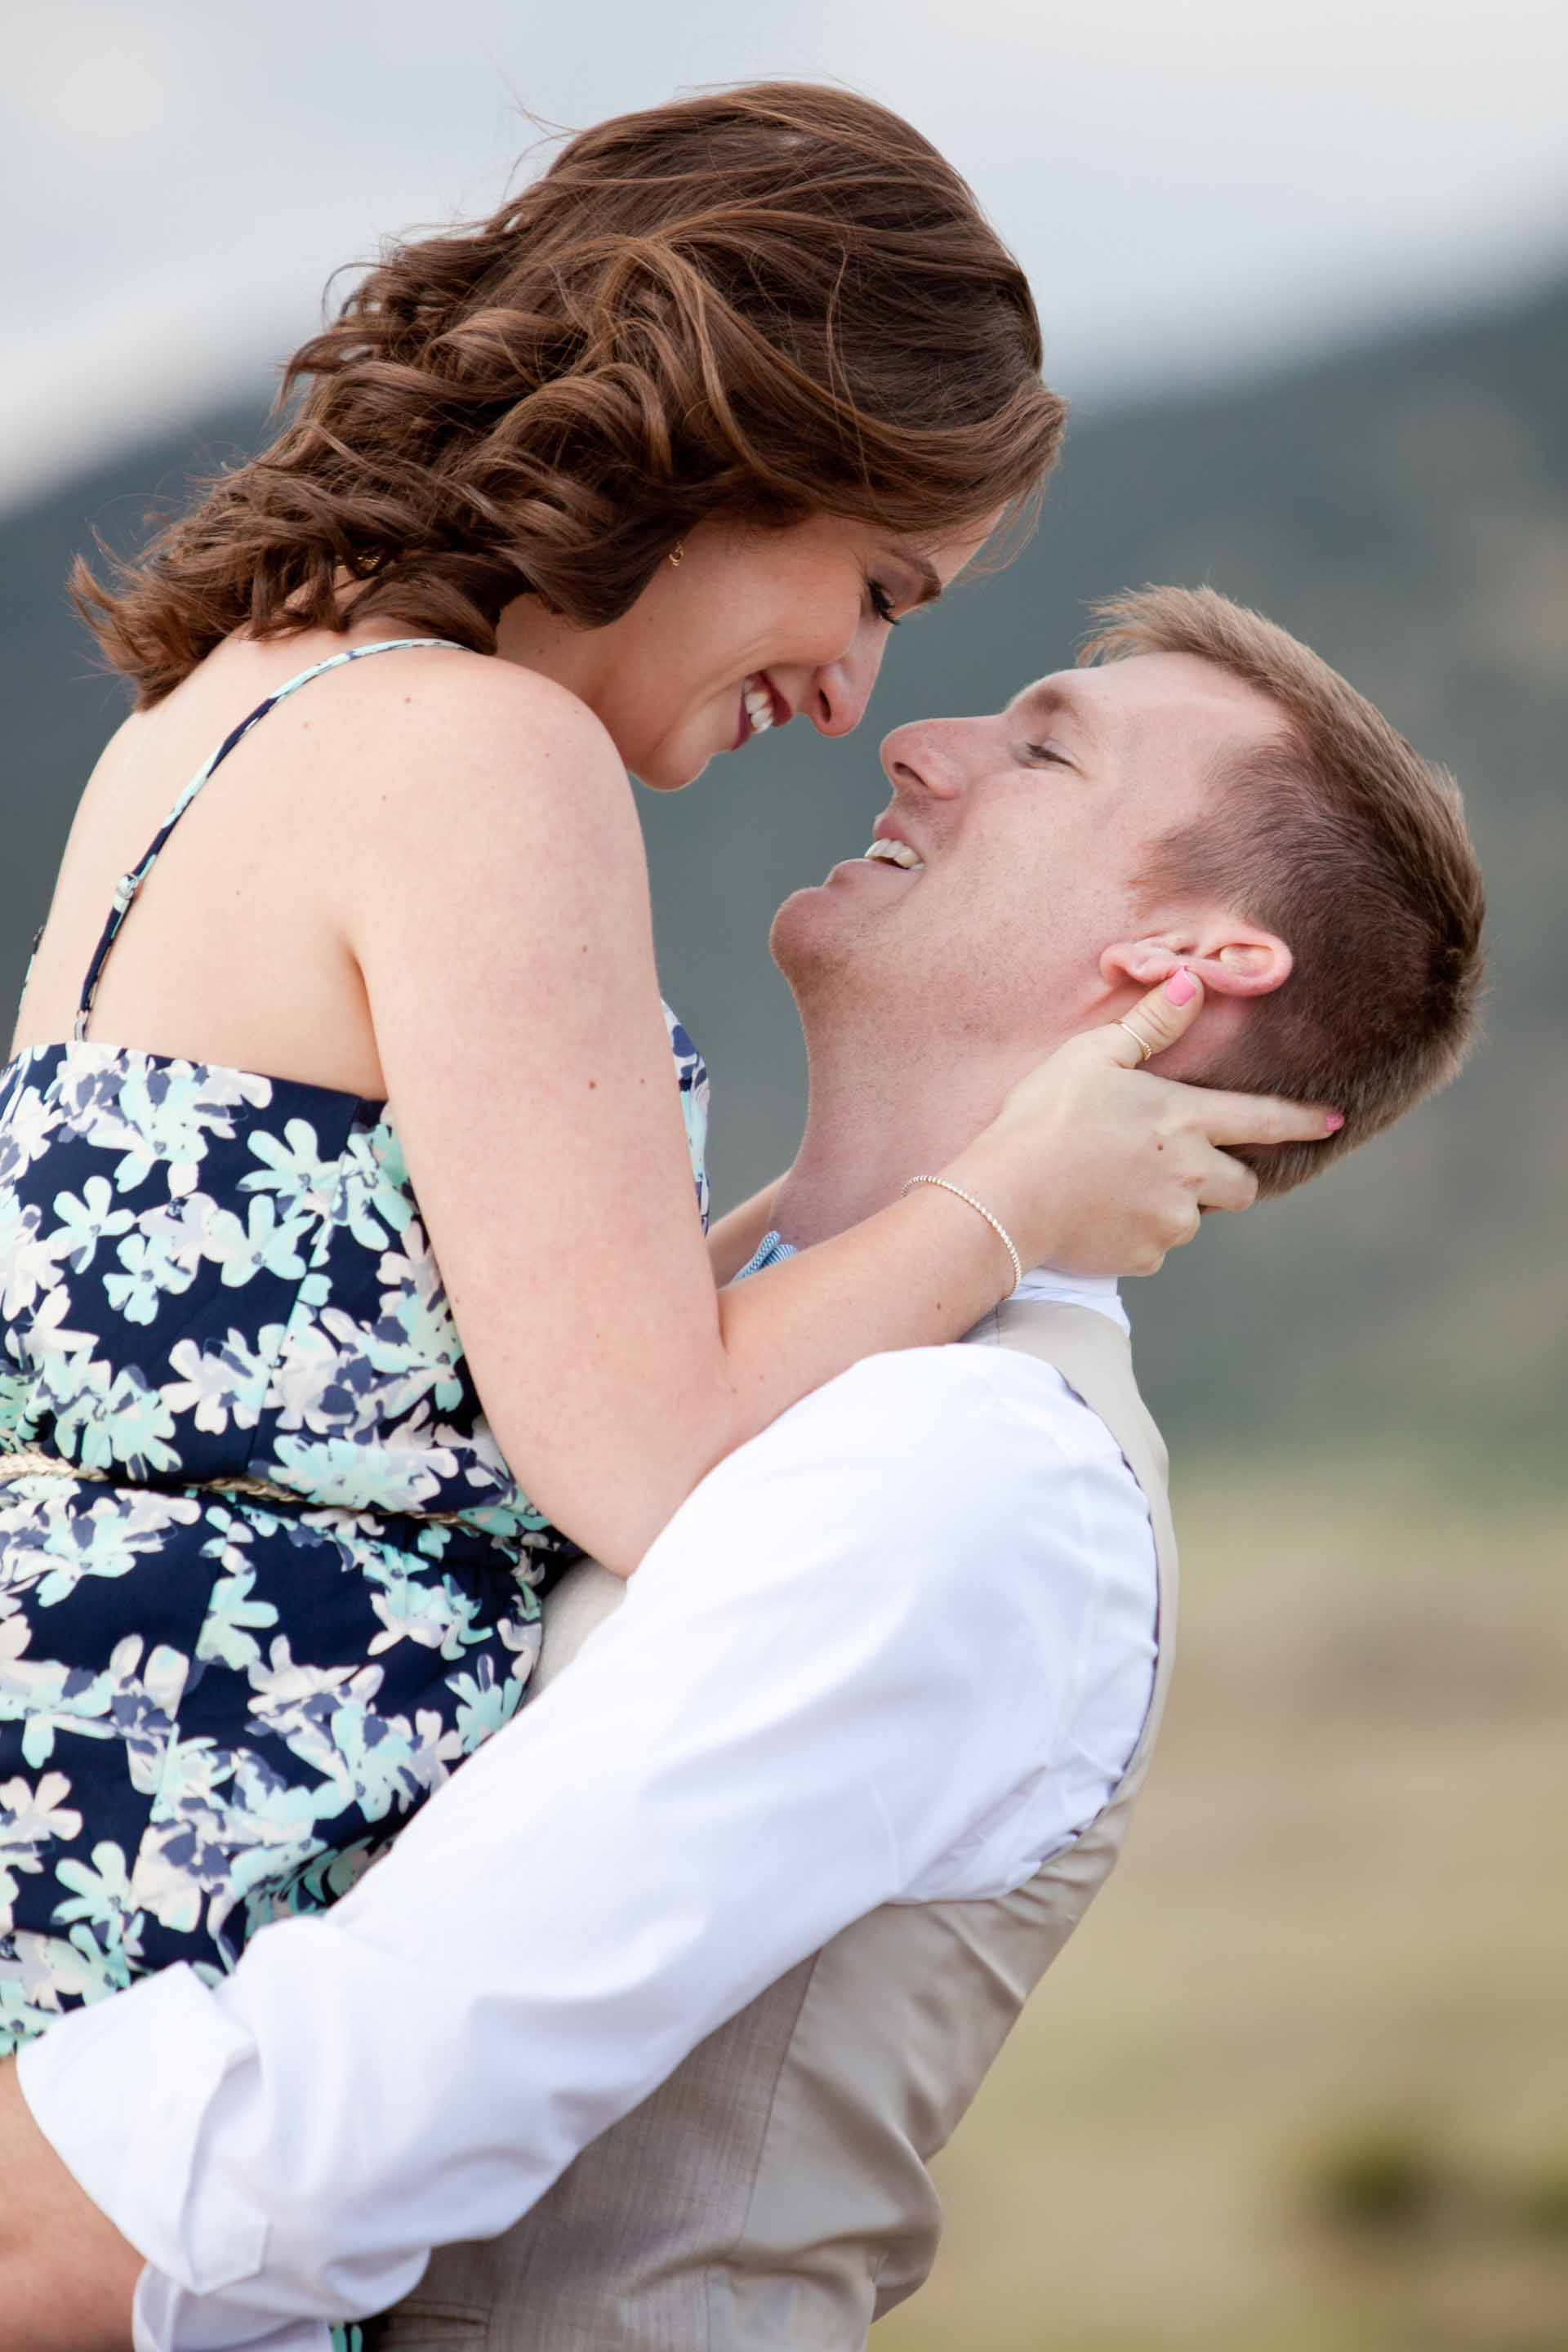 Dodge Colorado Springs >> Garden of the Gods Engagement Session - Baltimore Wedding & Engagement PhotographerBaltimore ...